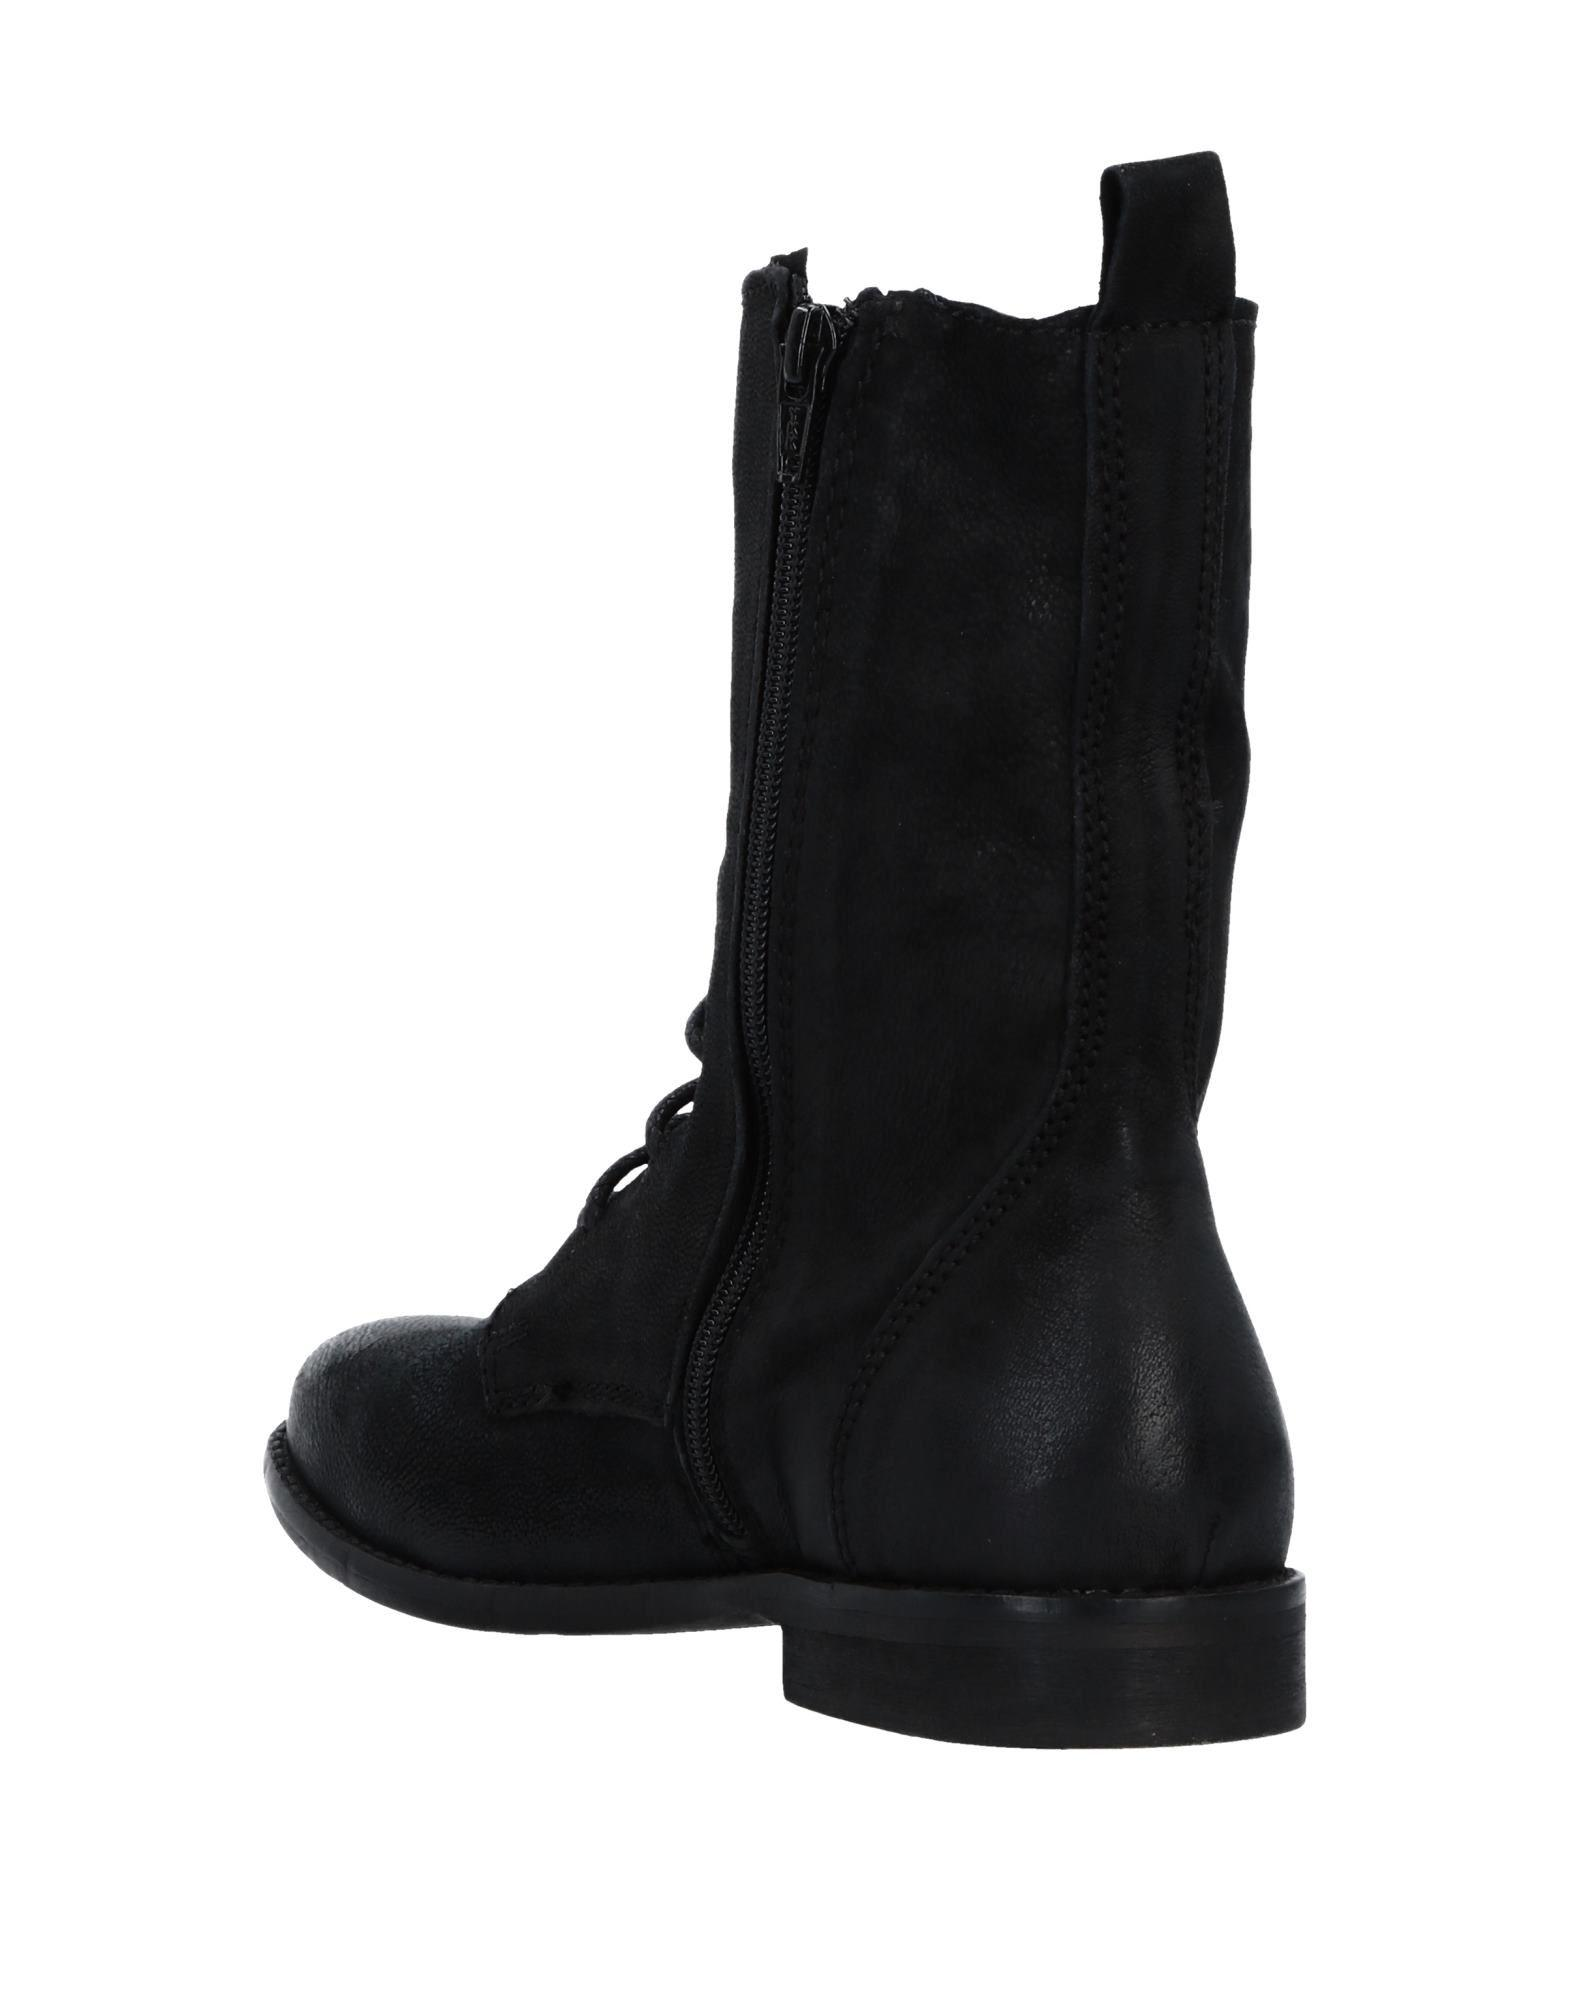 Inuovo Ankle Boots in Black